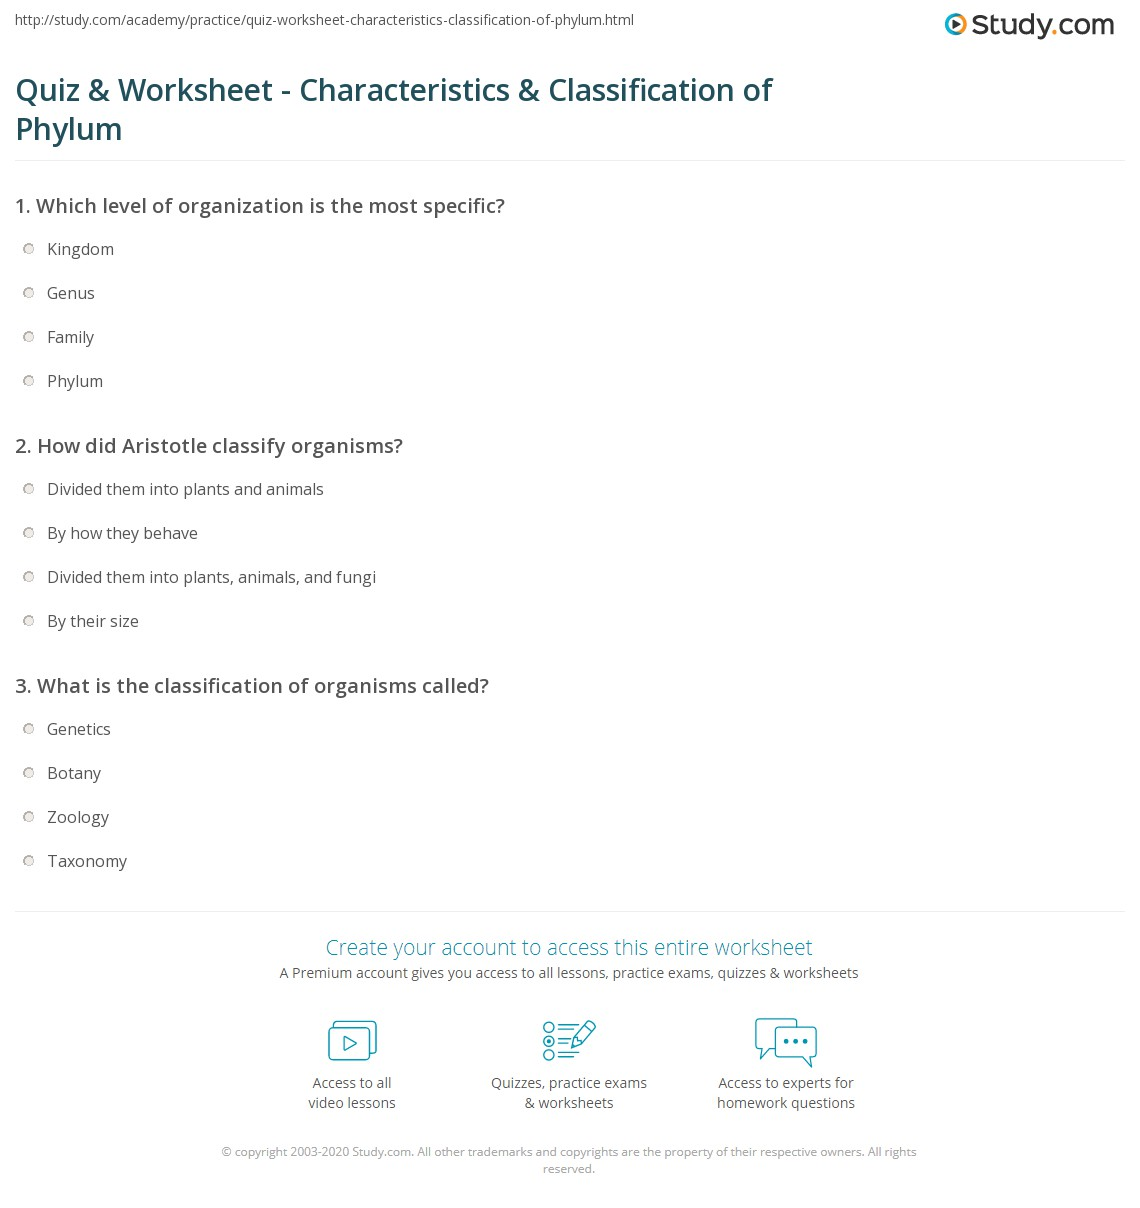 Quiz Worksheet Characteristics Classification Of Phylum